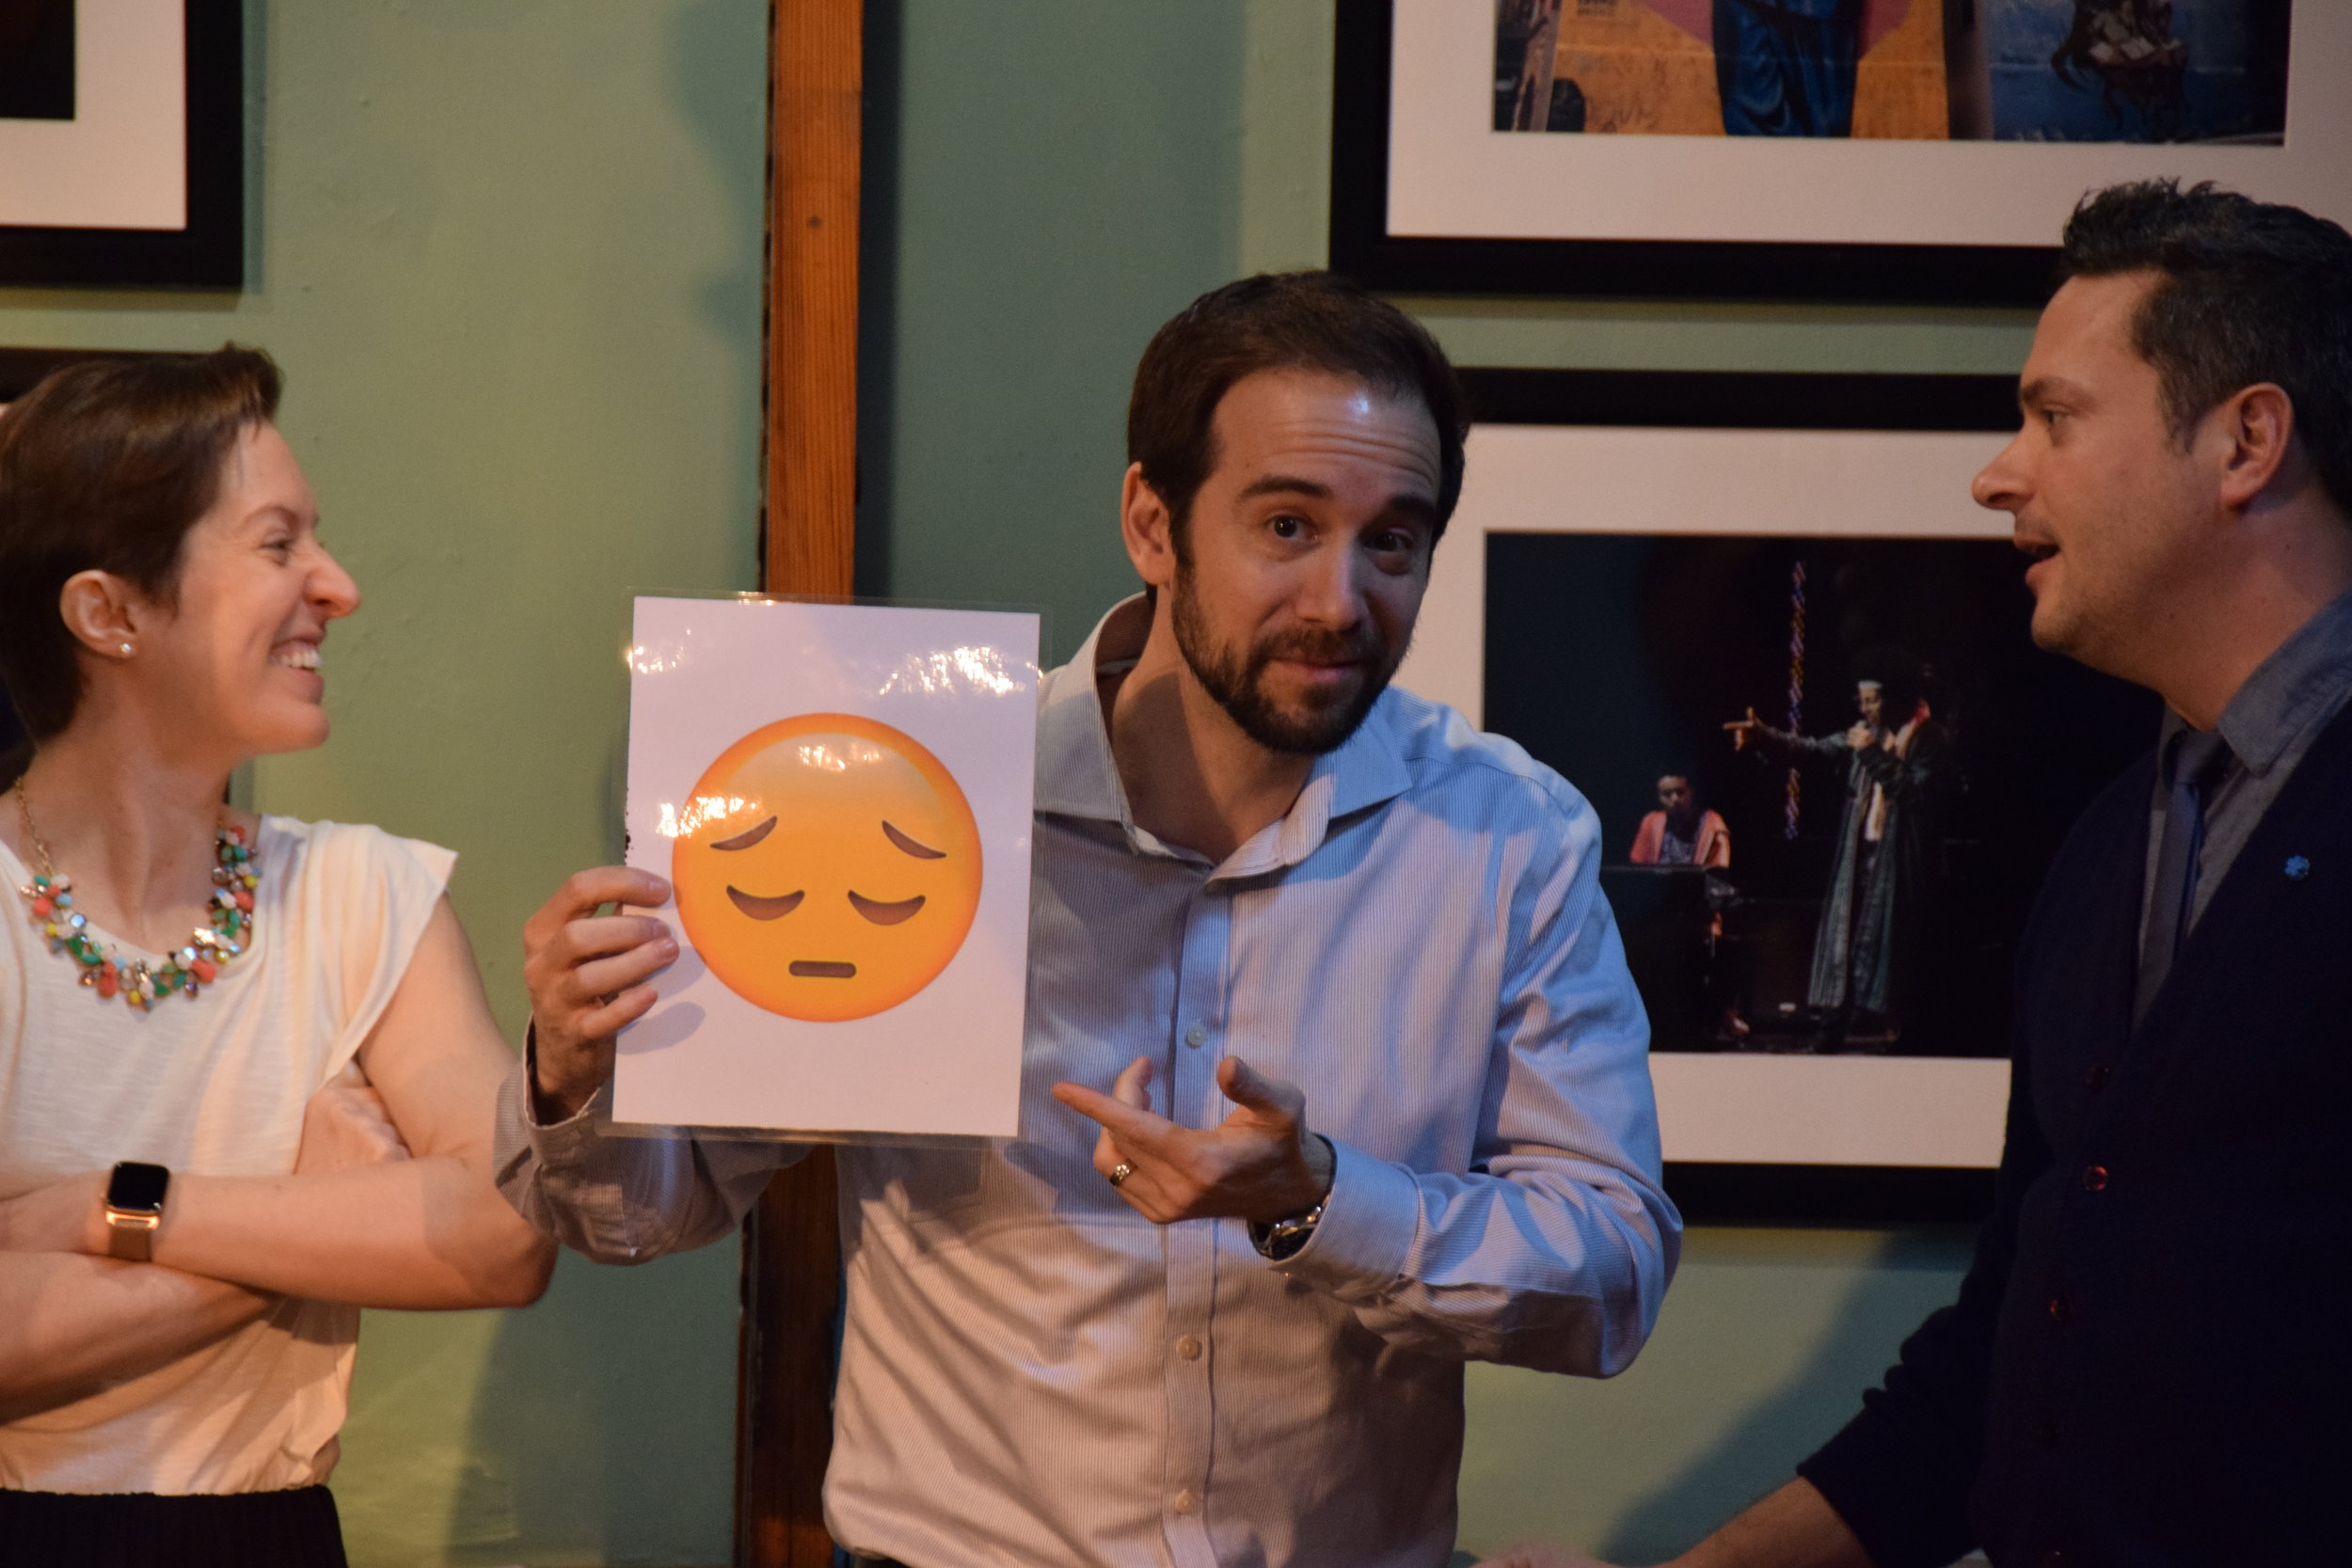 """Ross Benoliel, presenting a """"sad"""" emoji, with good-natured encouragement from Lianne Coble-Dispensa and Nathan Carlisle."""